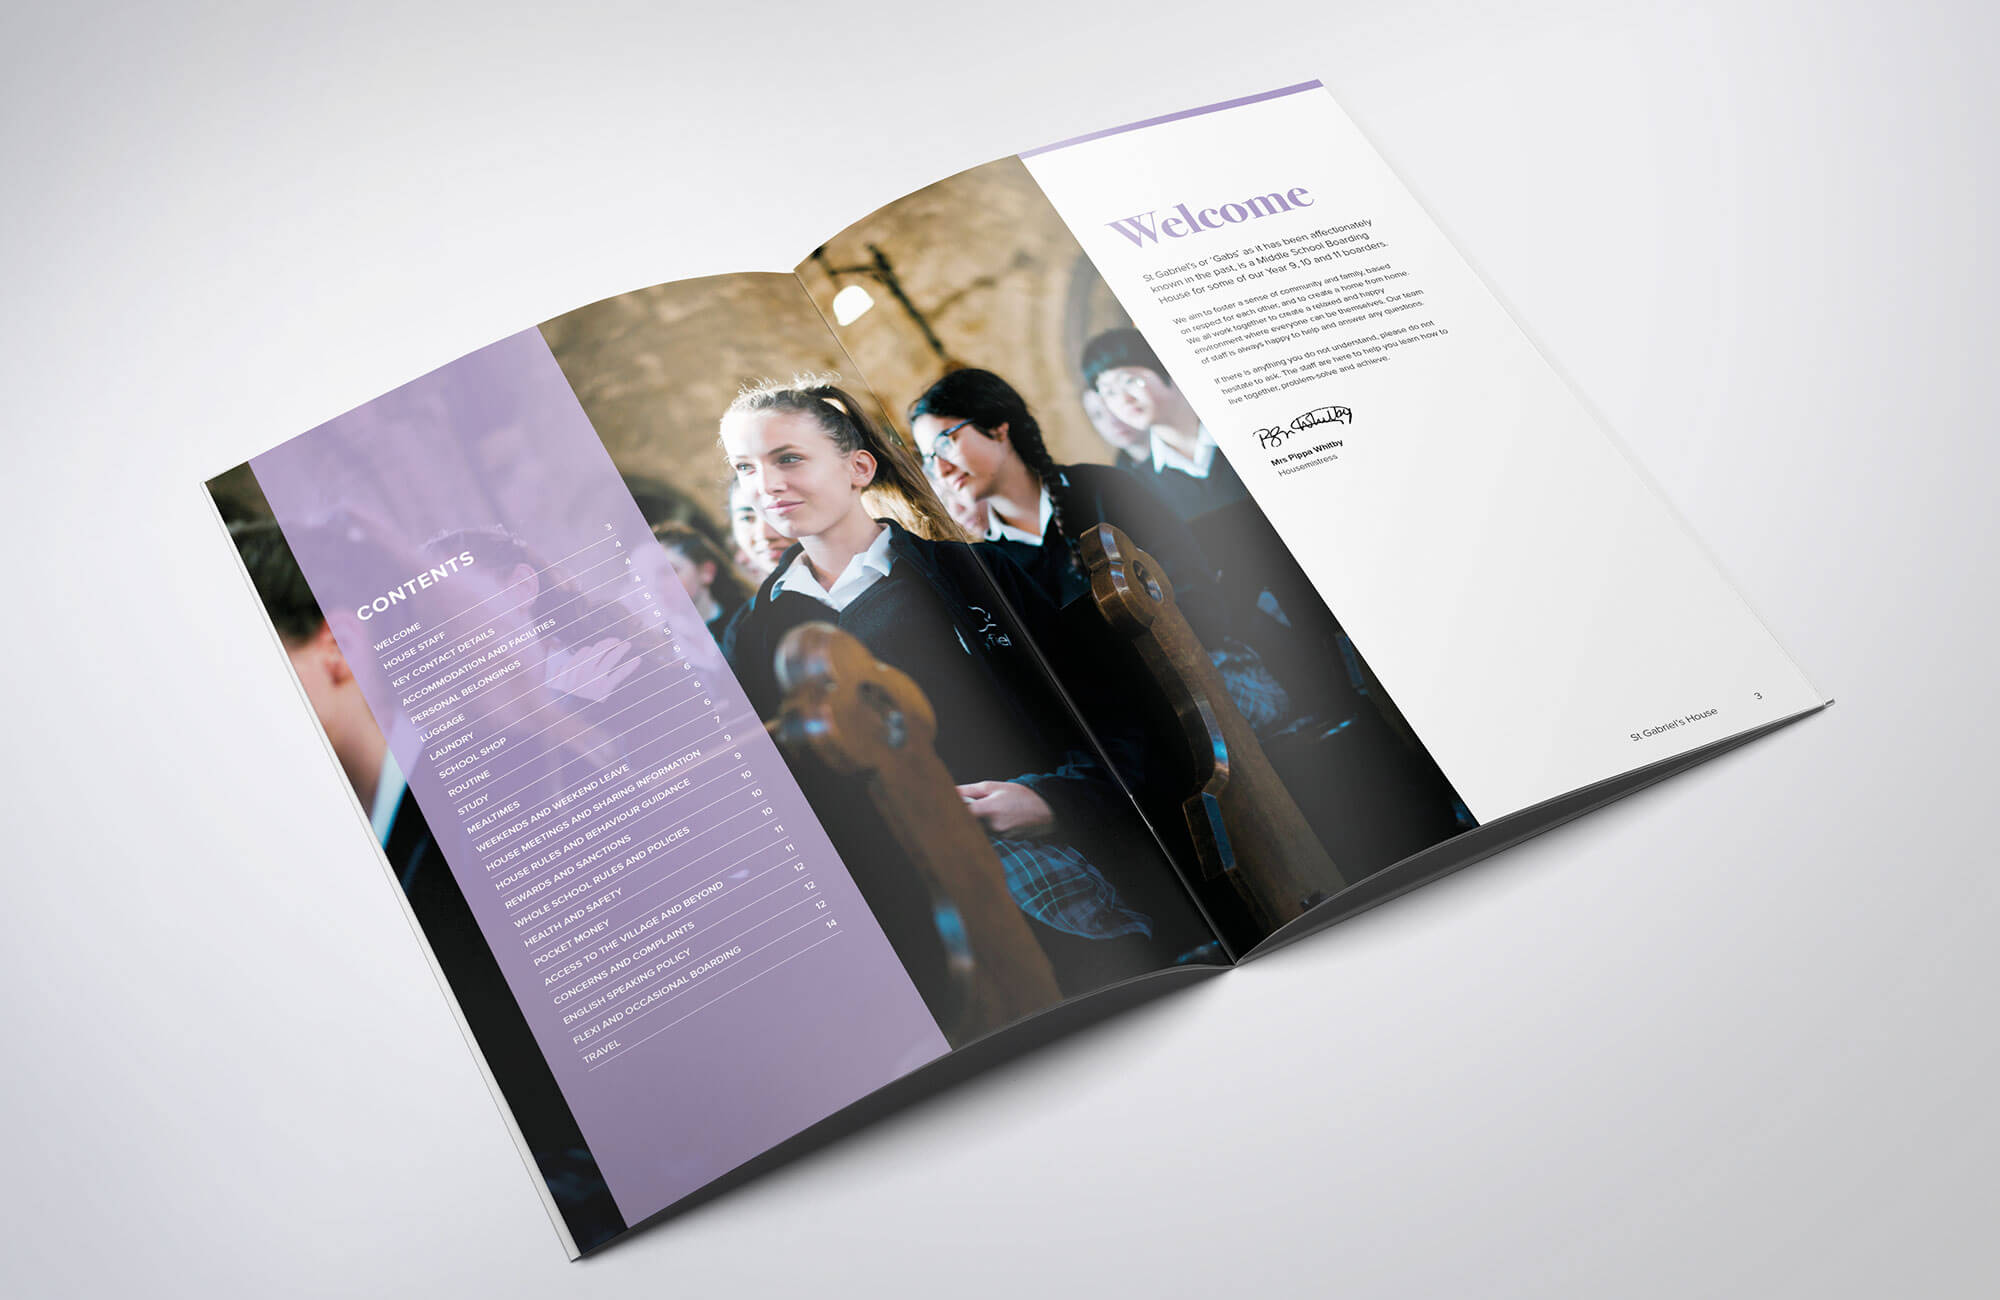 Mayfield School Sixth Form Choices Book Design